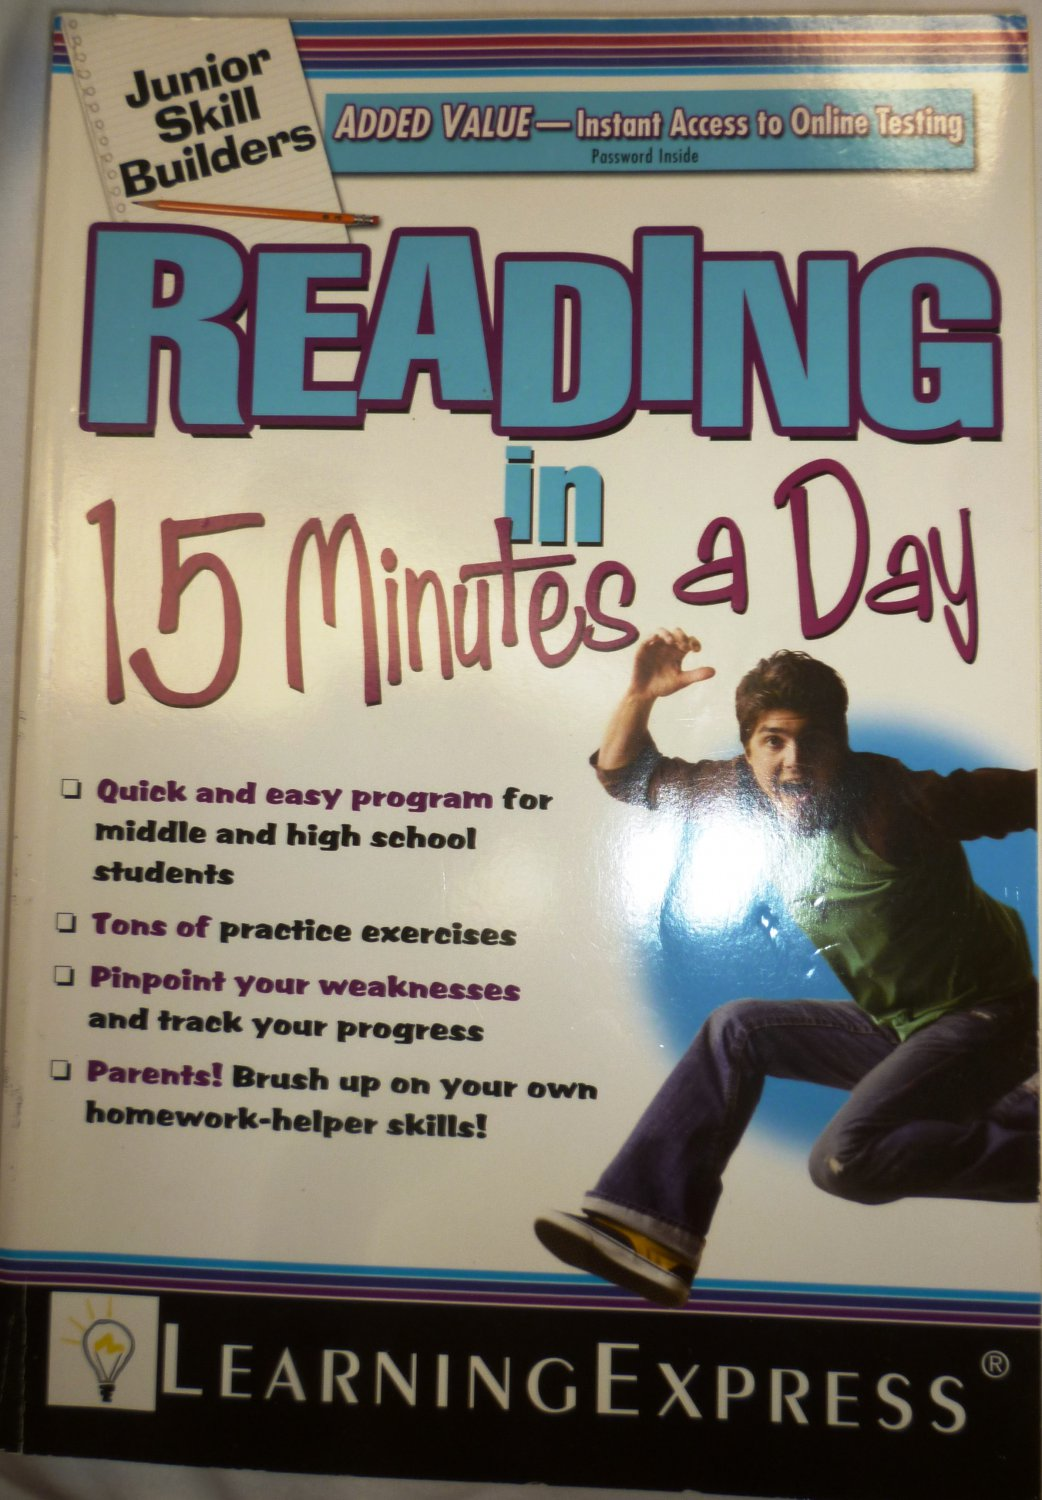 JUNIOR SKILL BUILDERS: READING IN 15 MINUTES A DAY LEARNING EXPRESS